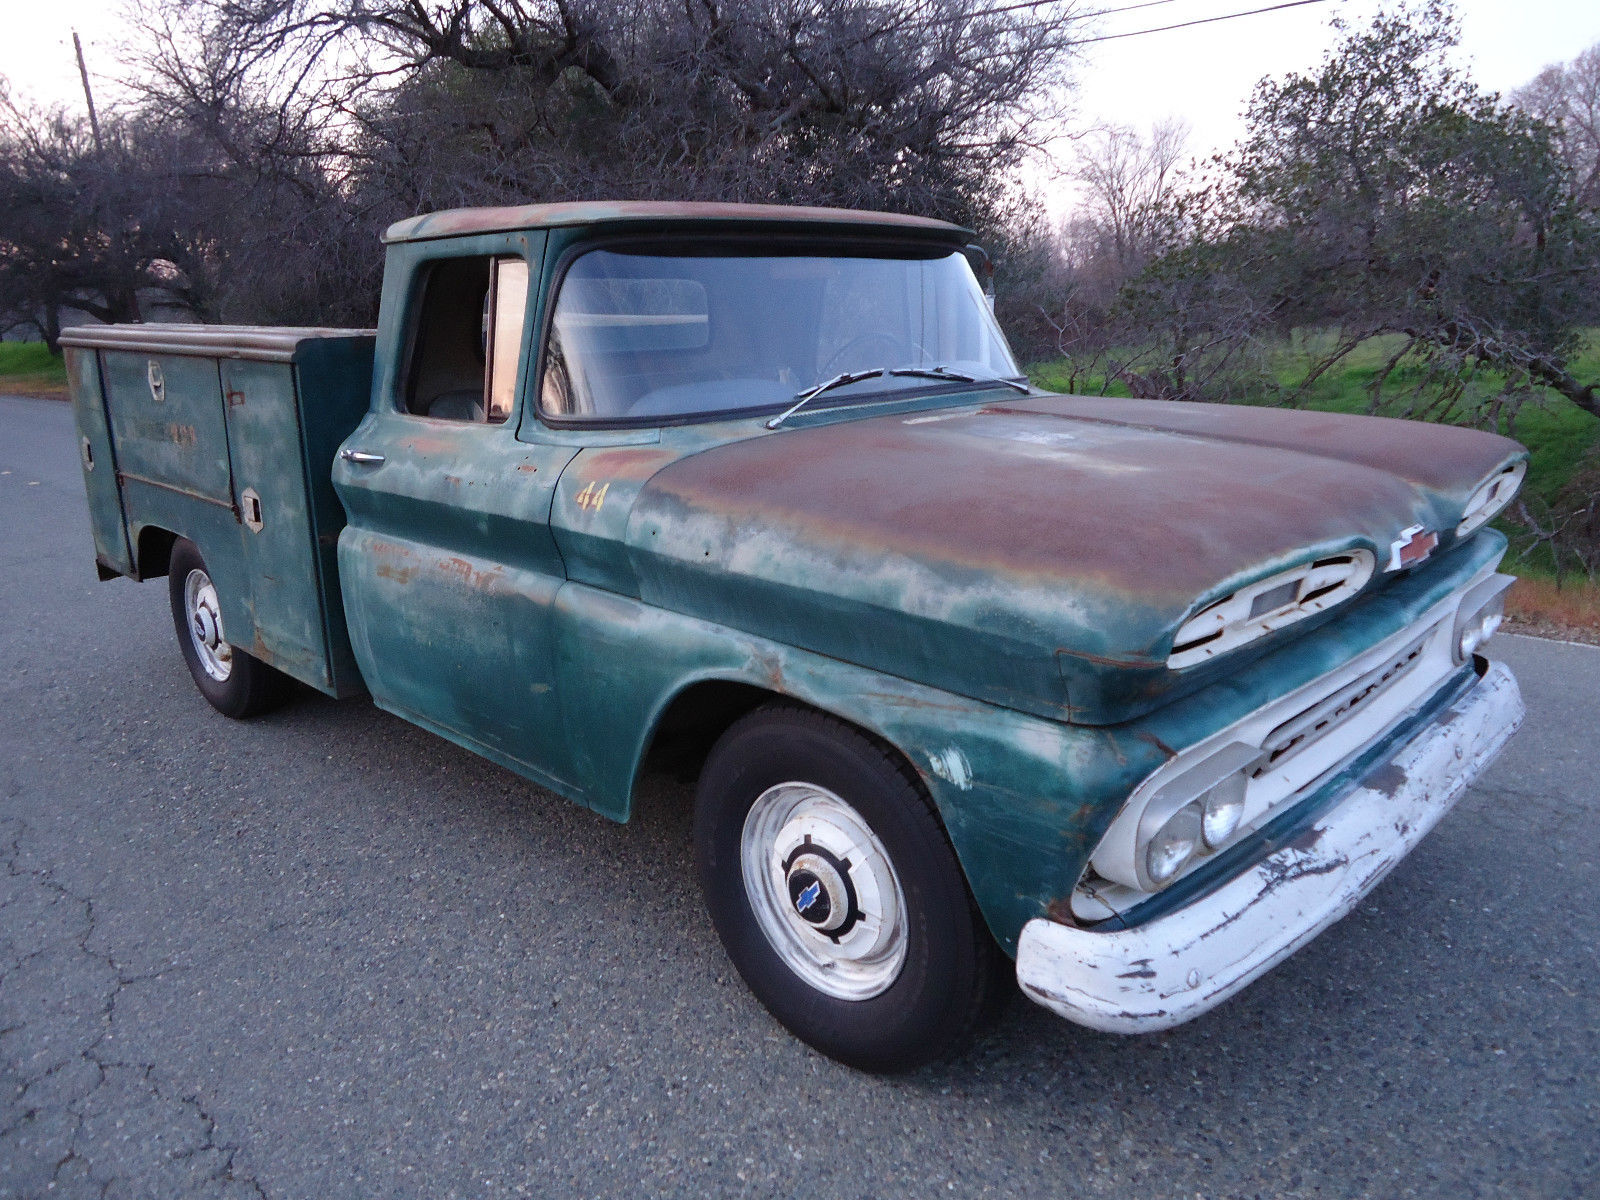 california native 1961 chevy utility bed truck with natural patina for sale in lincoln. Black Bedroom Furniture Sets. Home Design Ideas